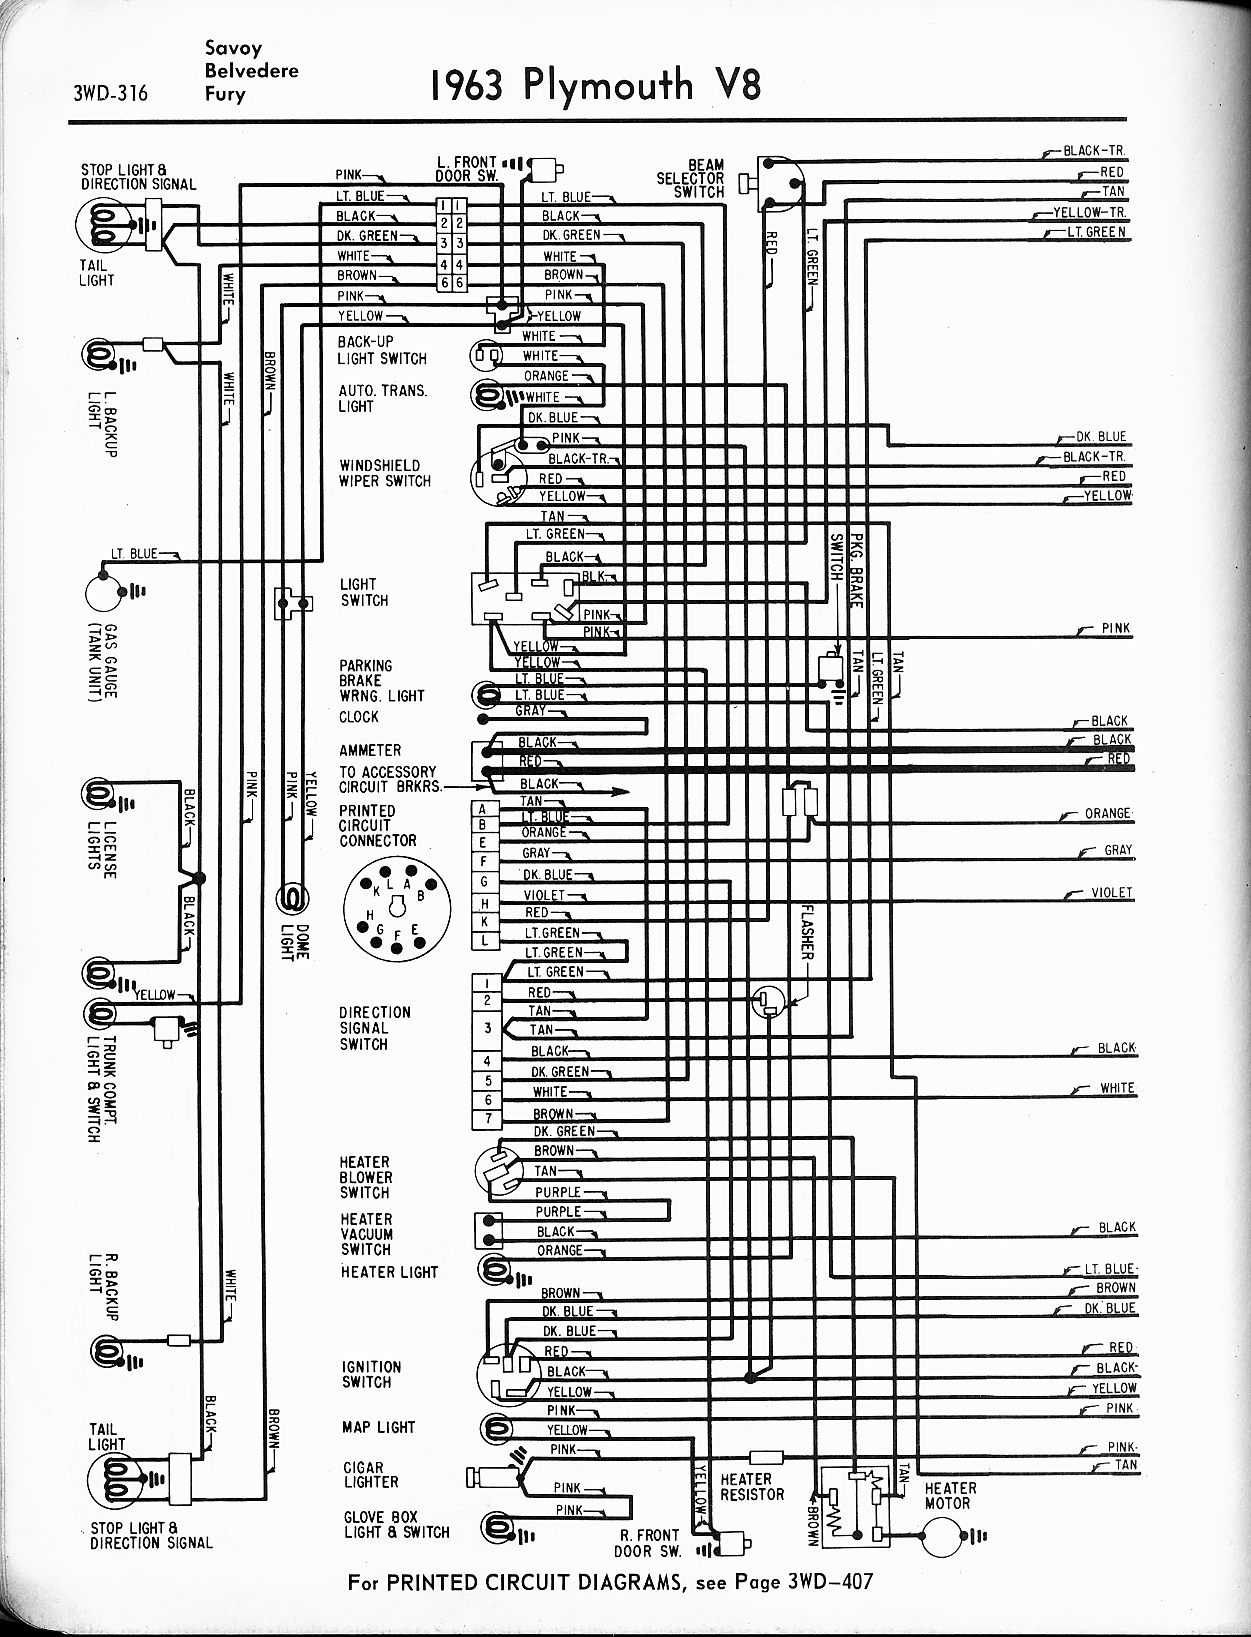 1967 plymouth fury wiring diagram schematic wiring diagram u2022 rh championapp co 1966 Plymouth Fury 1966 Plymouth Fury